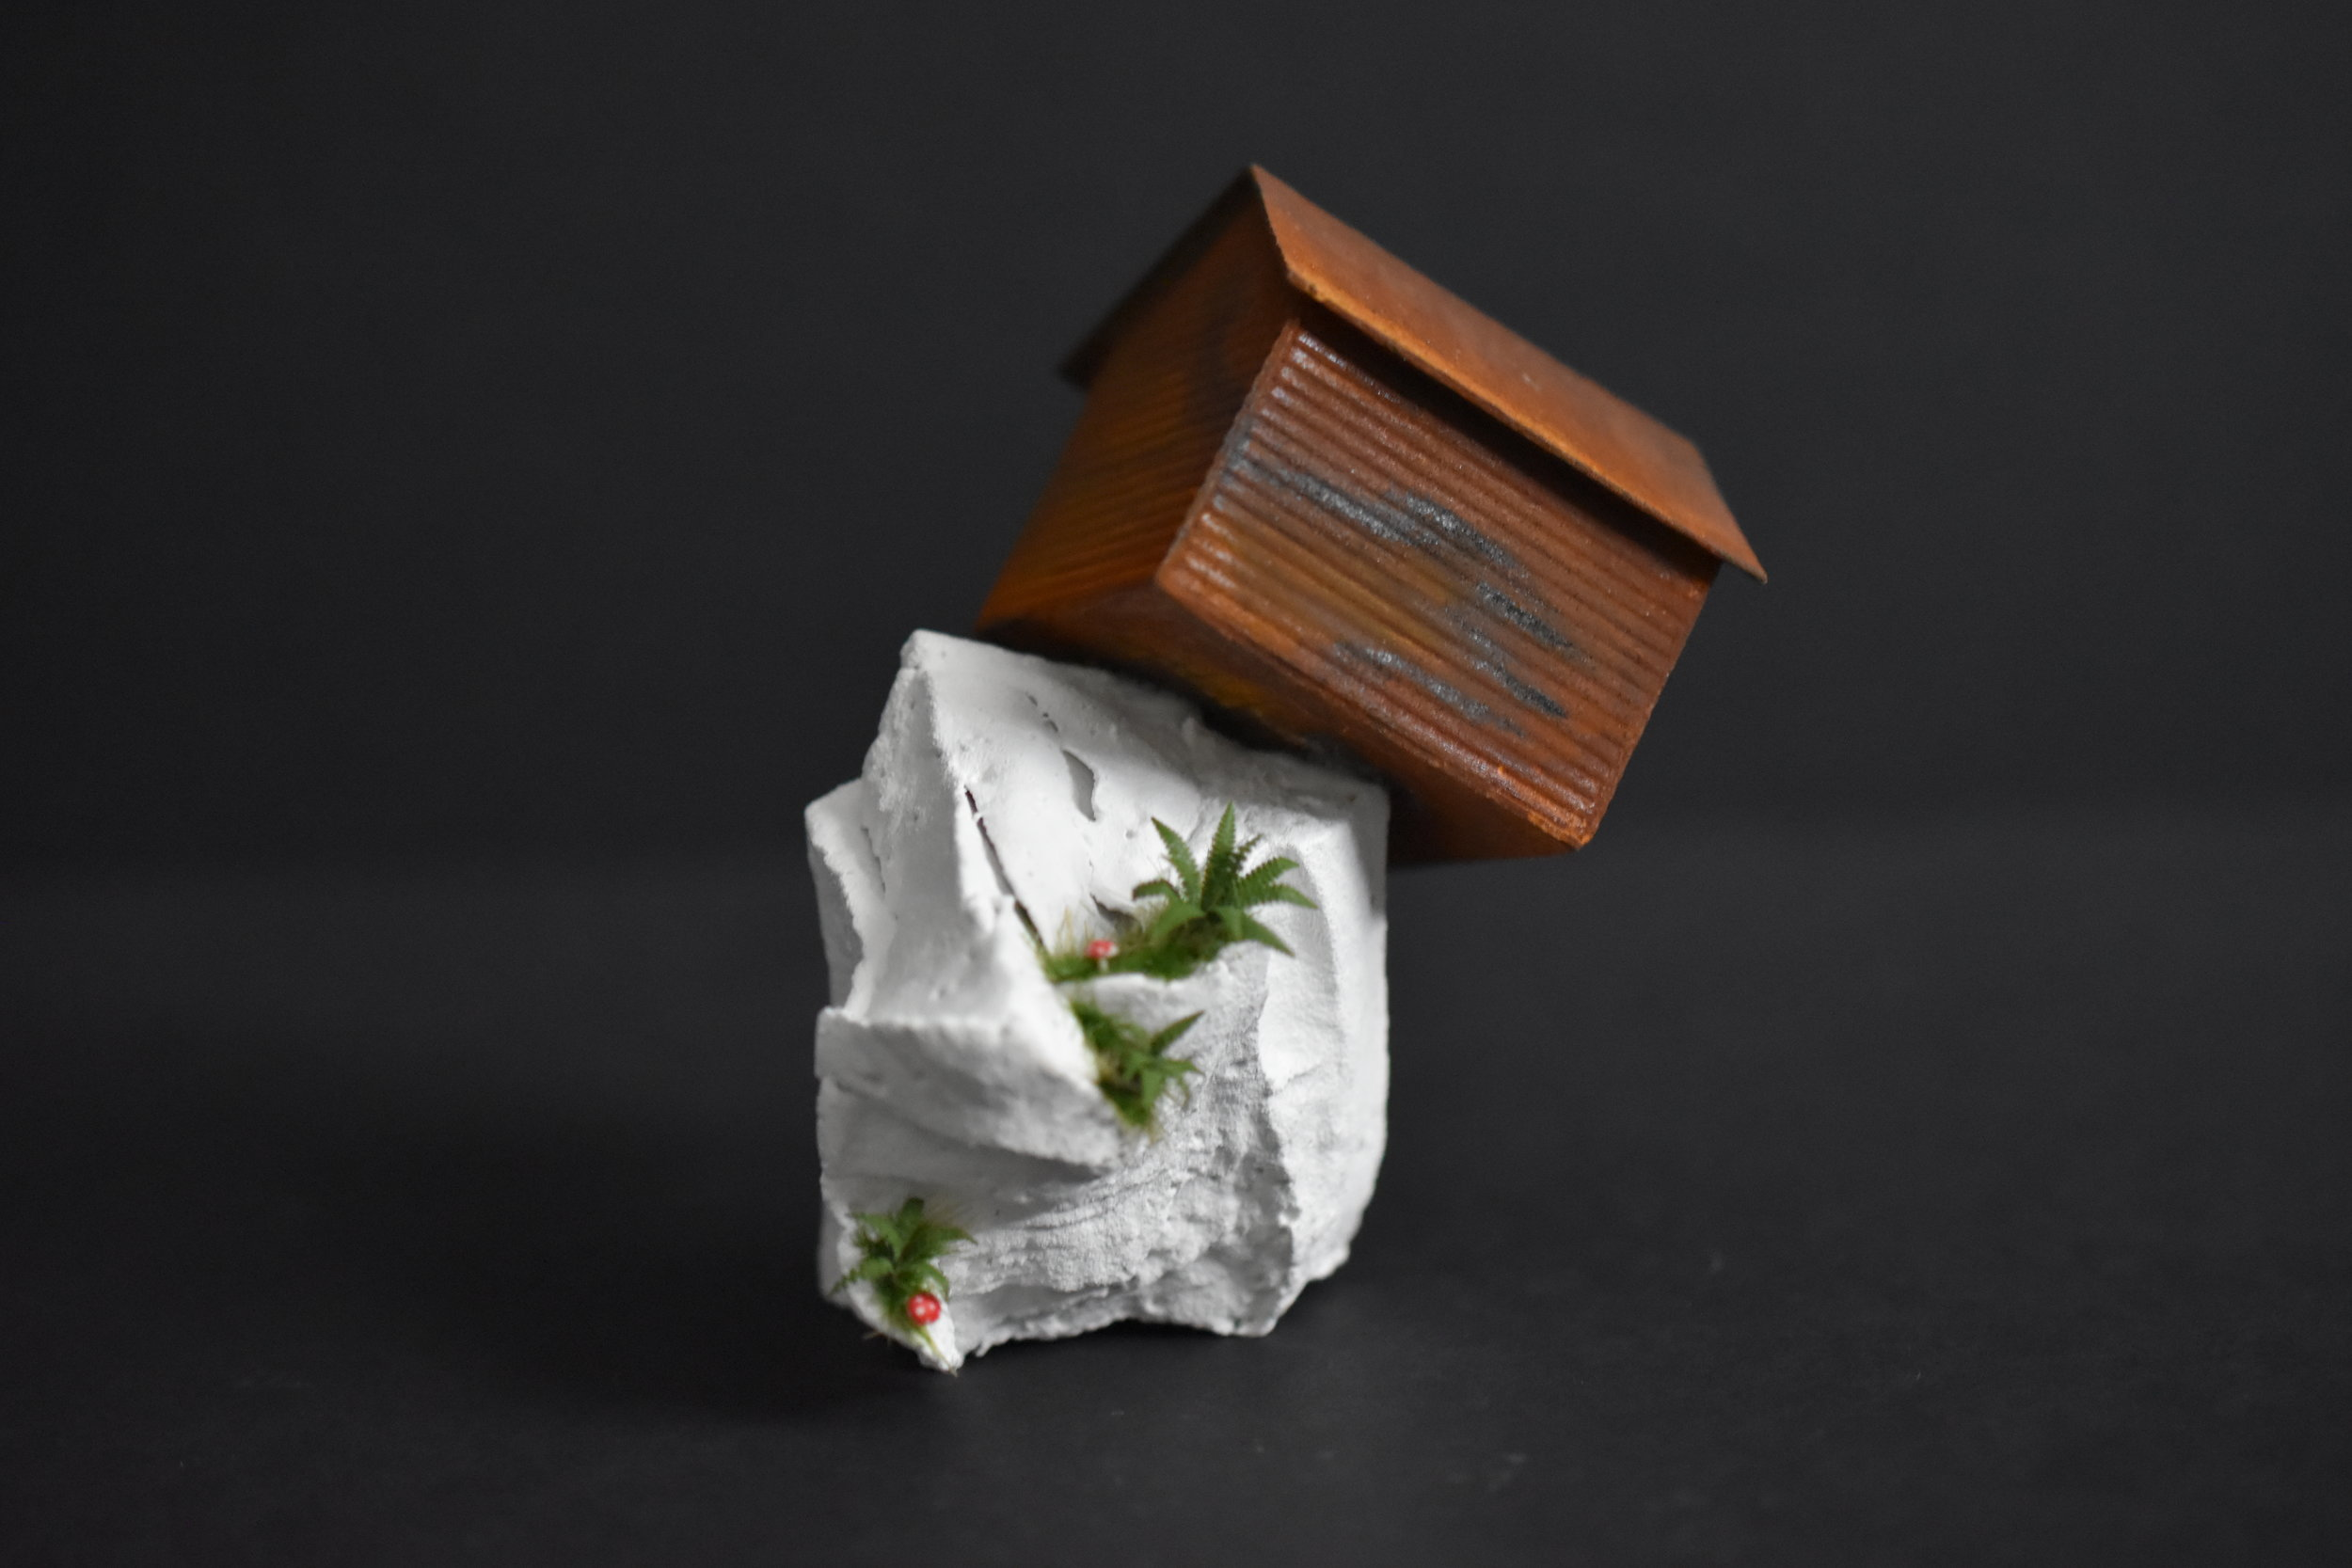 Tatiana Flis,  Off the Edge , Wood, plastic, and mixed-media, 3.5 x 2 x 2.5 inches